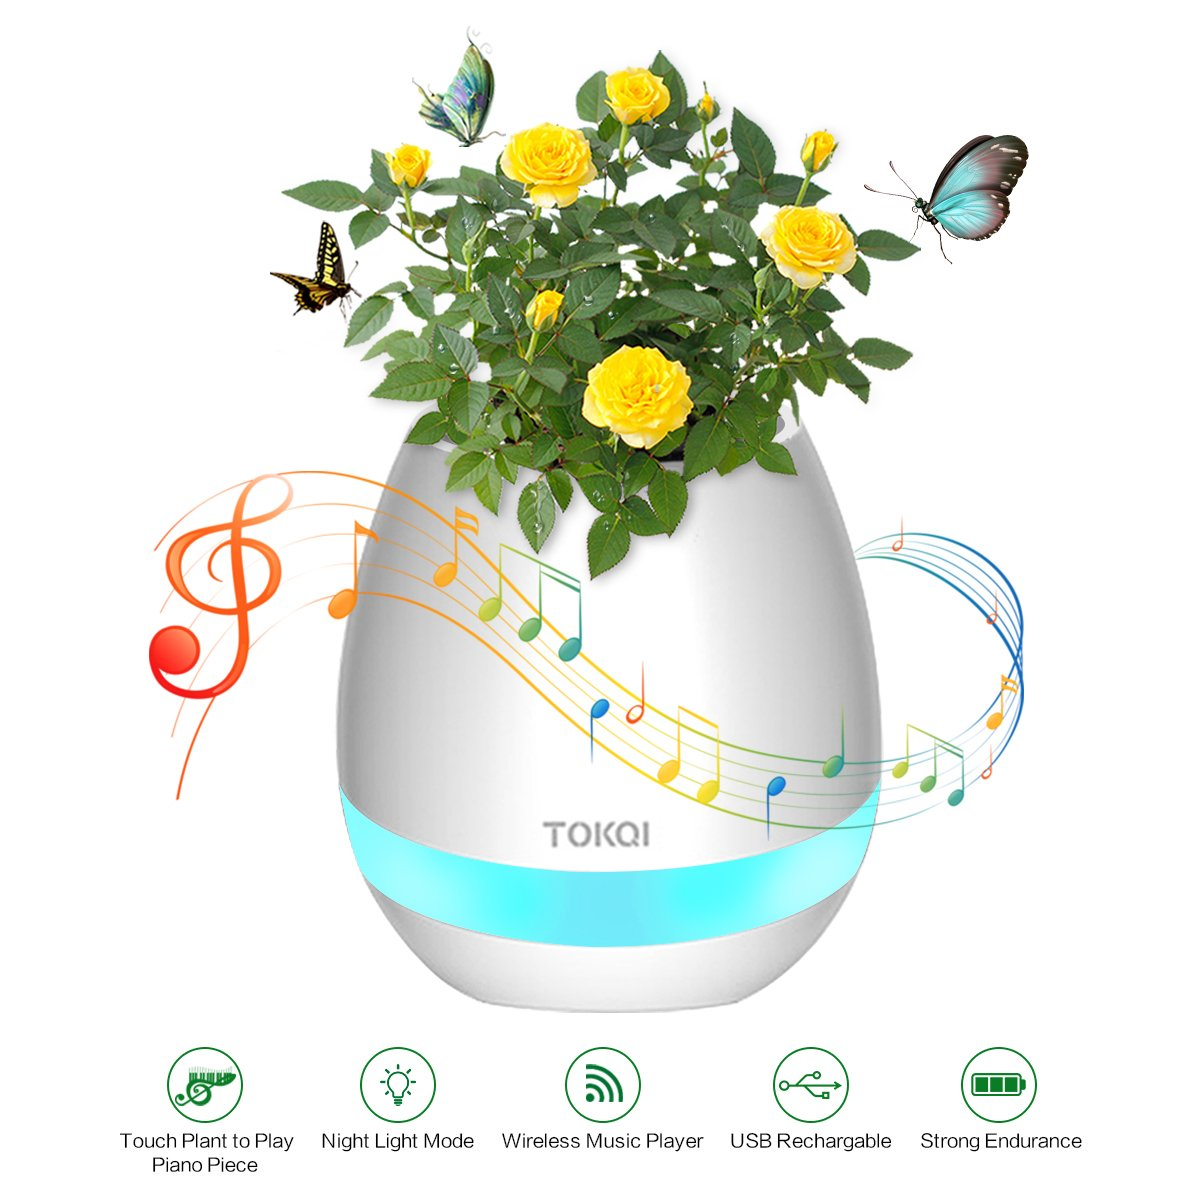 Bluetooth Speaker Smart Music Flower Pot PATHONOR Colorful LED Night Light Touch Plant Piano Music Playing Creative Wireless Speaker for Home Office(Without Plants) by PATHONOR